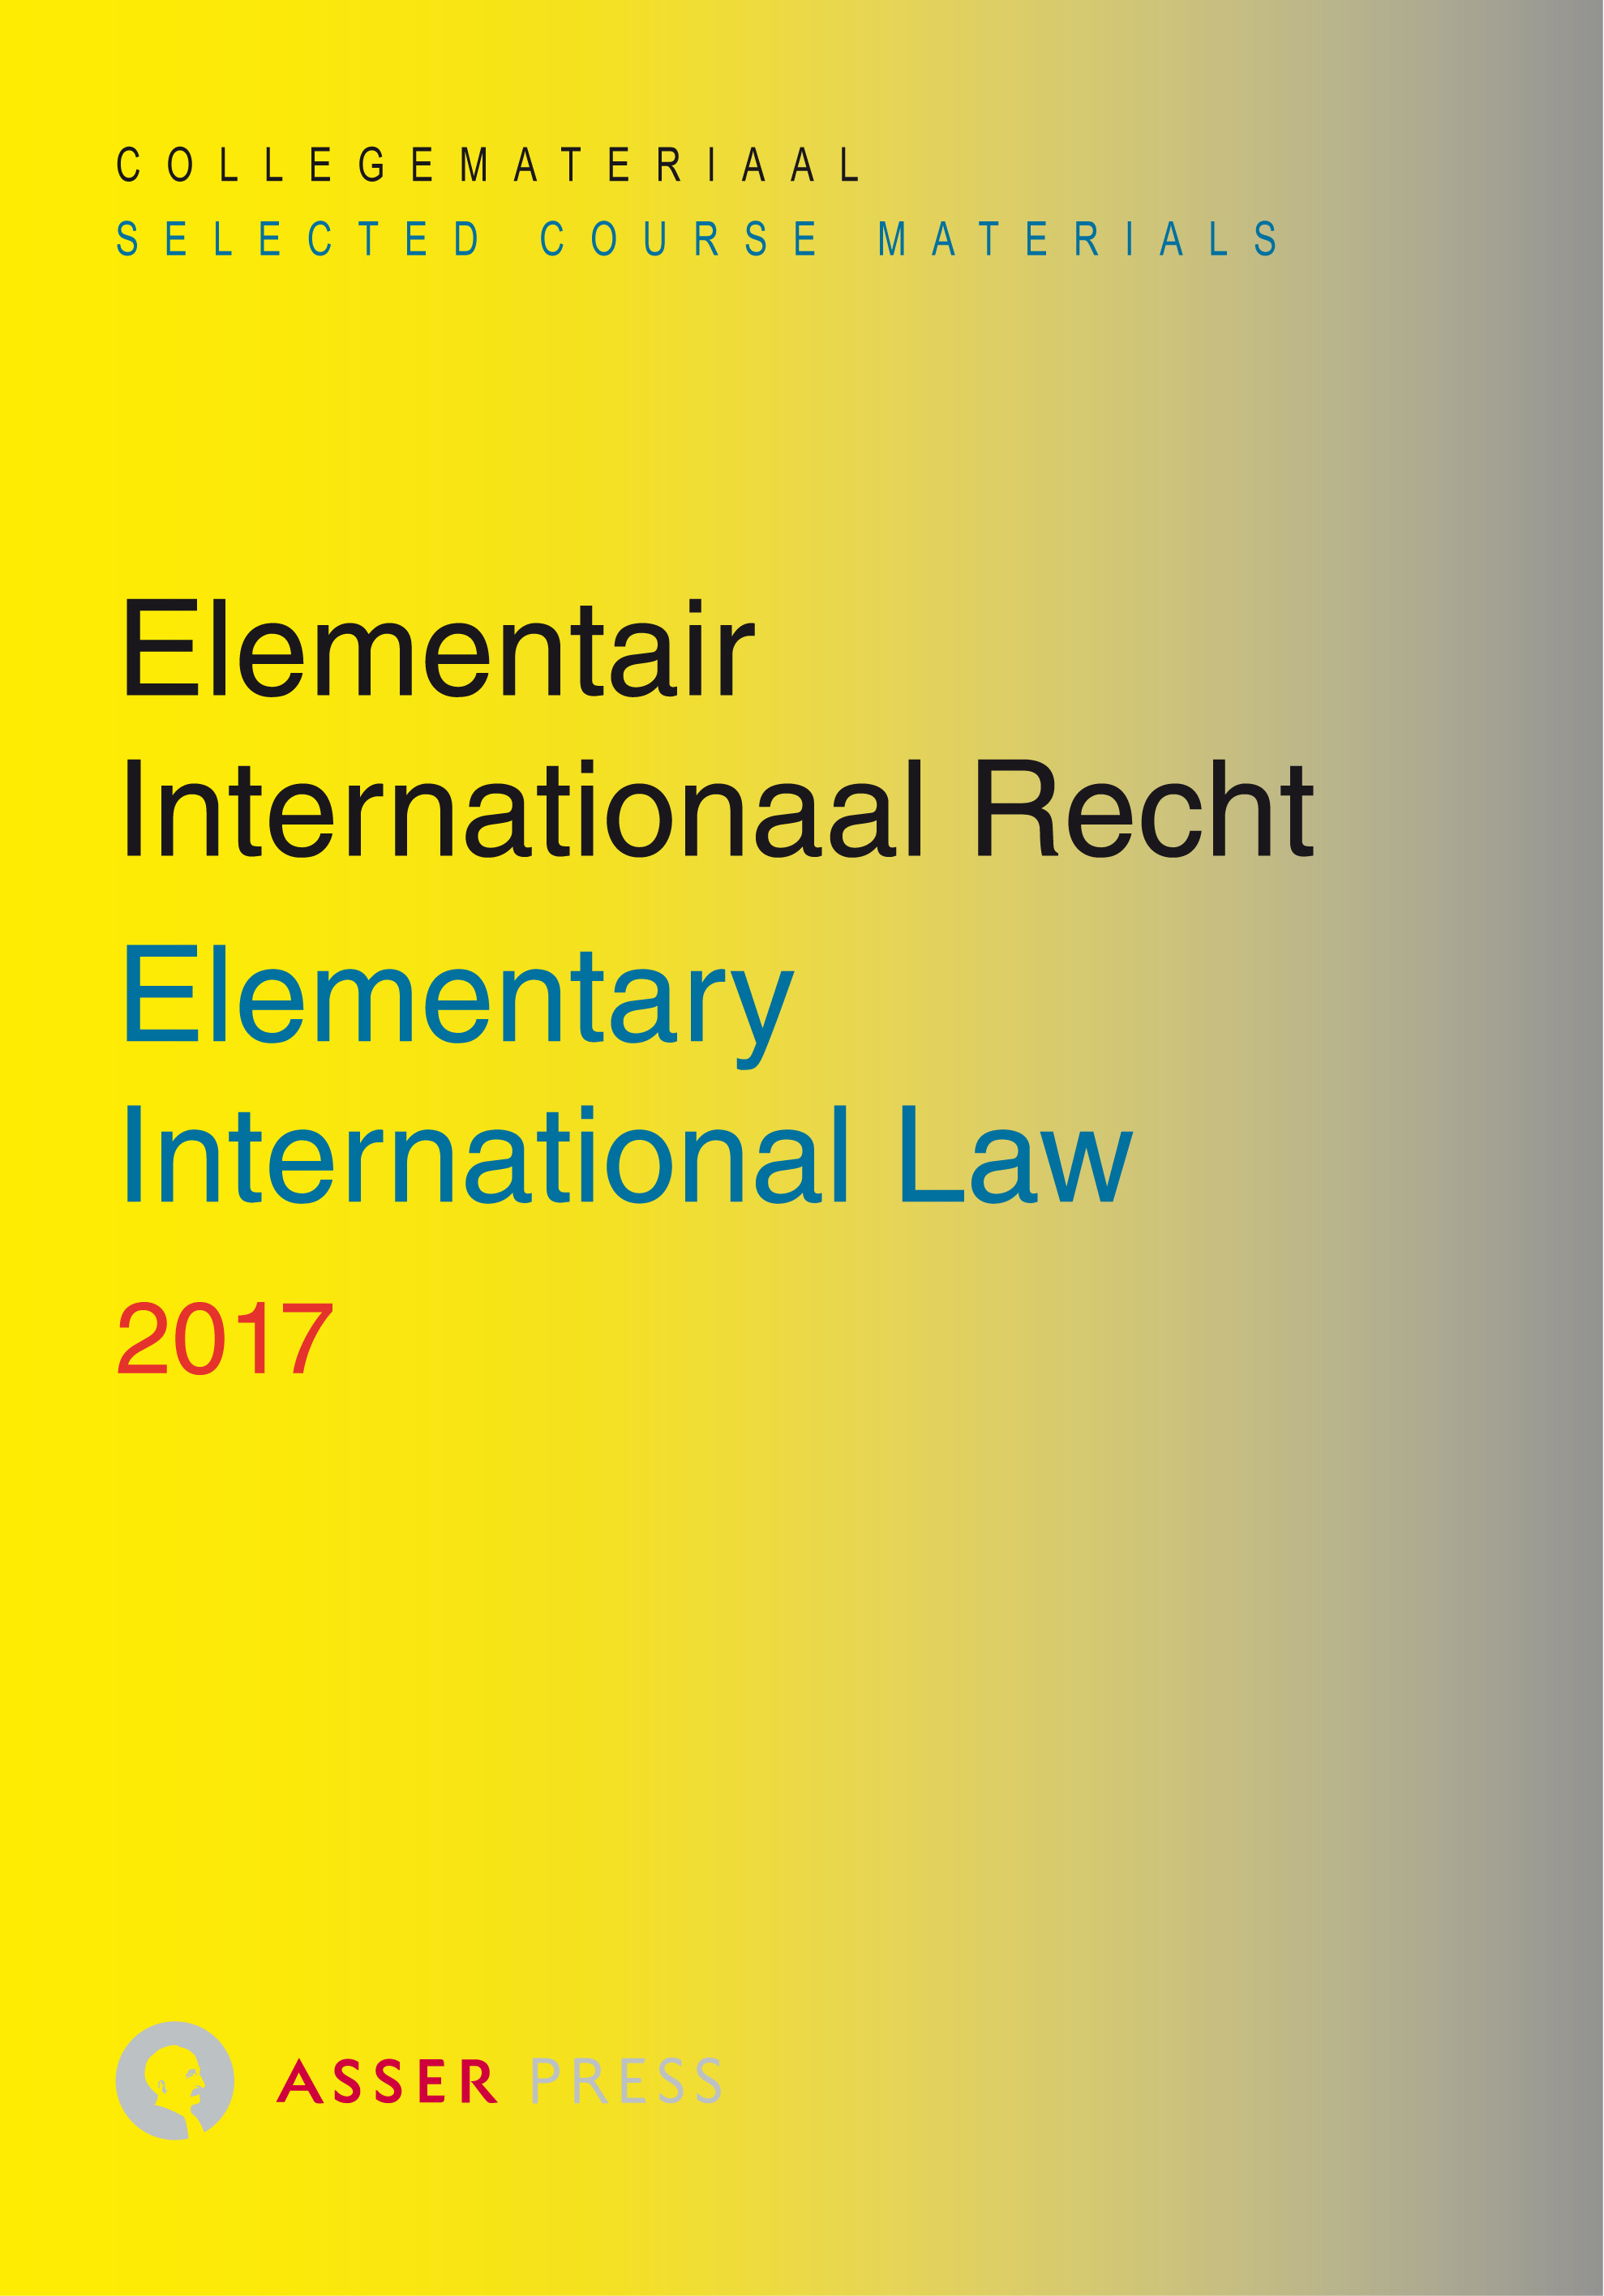 Elementair Internationaal Recht 2017/Elementary International Law 2017